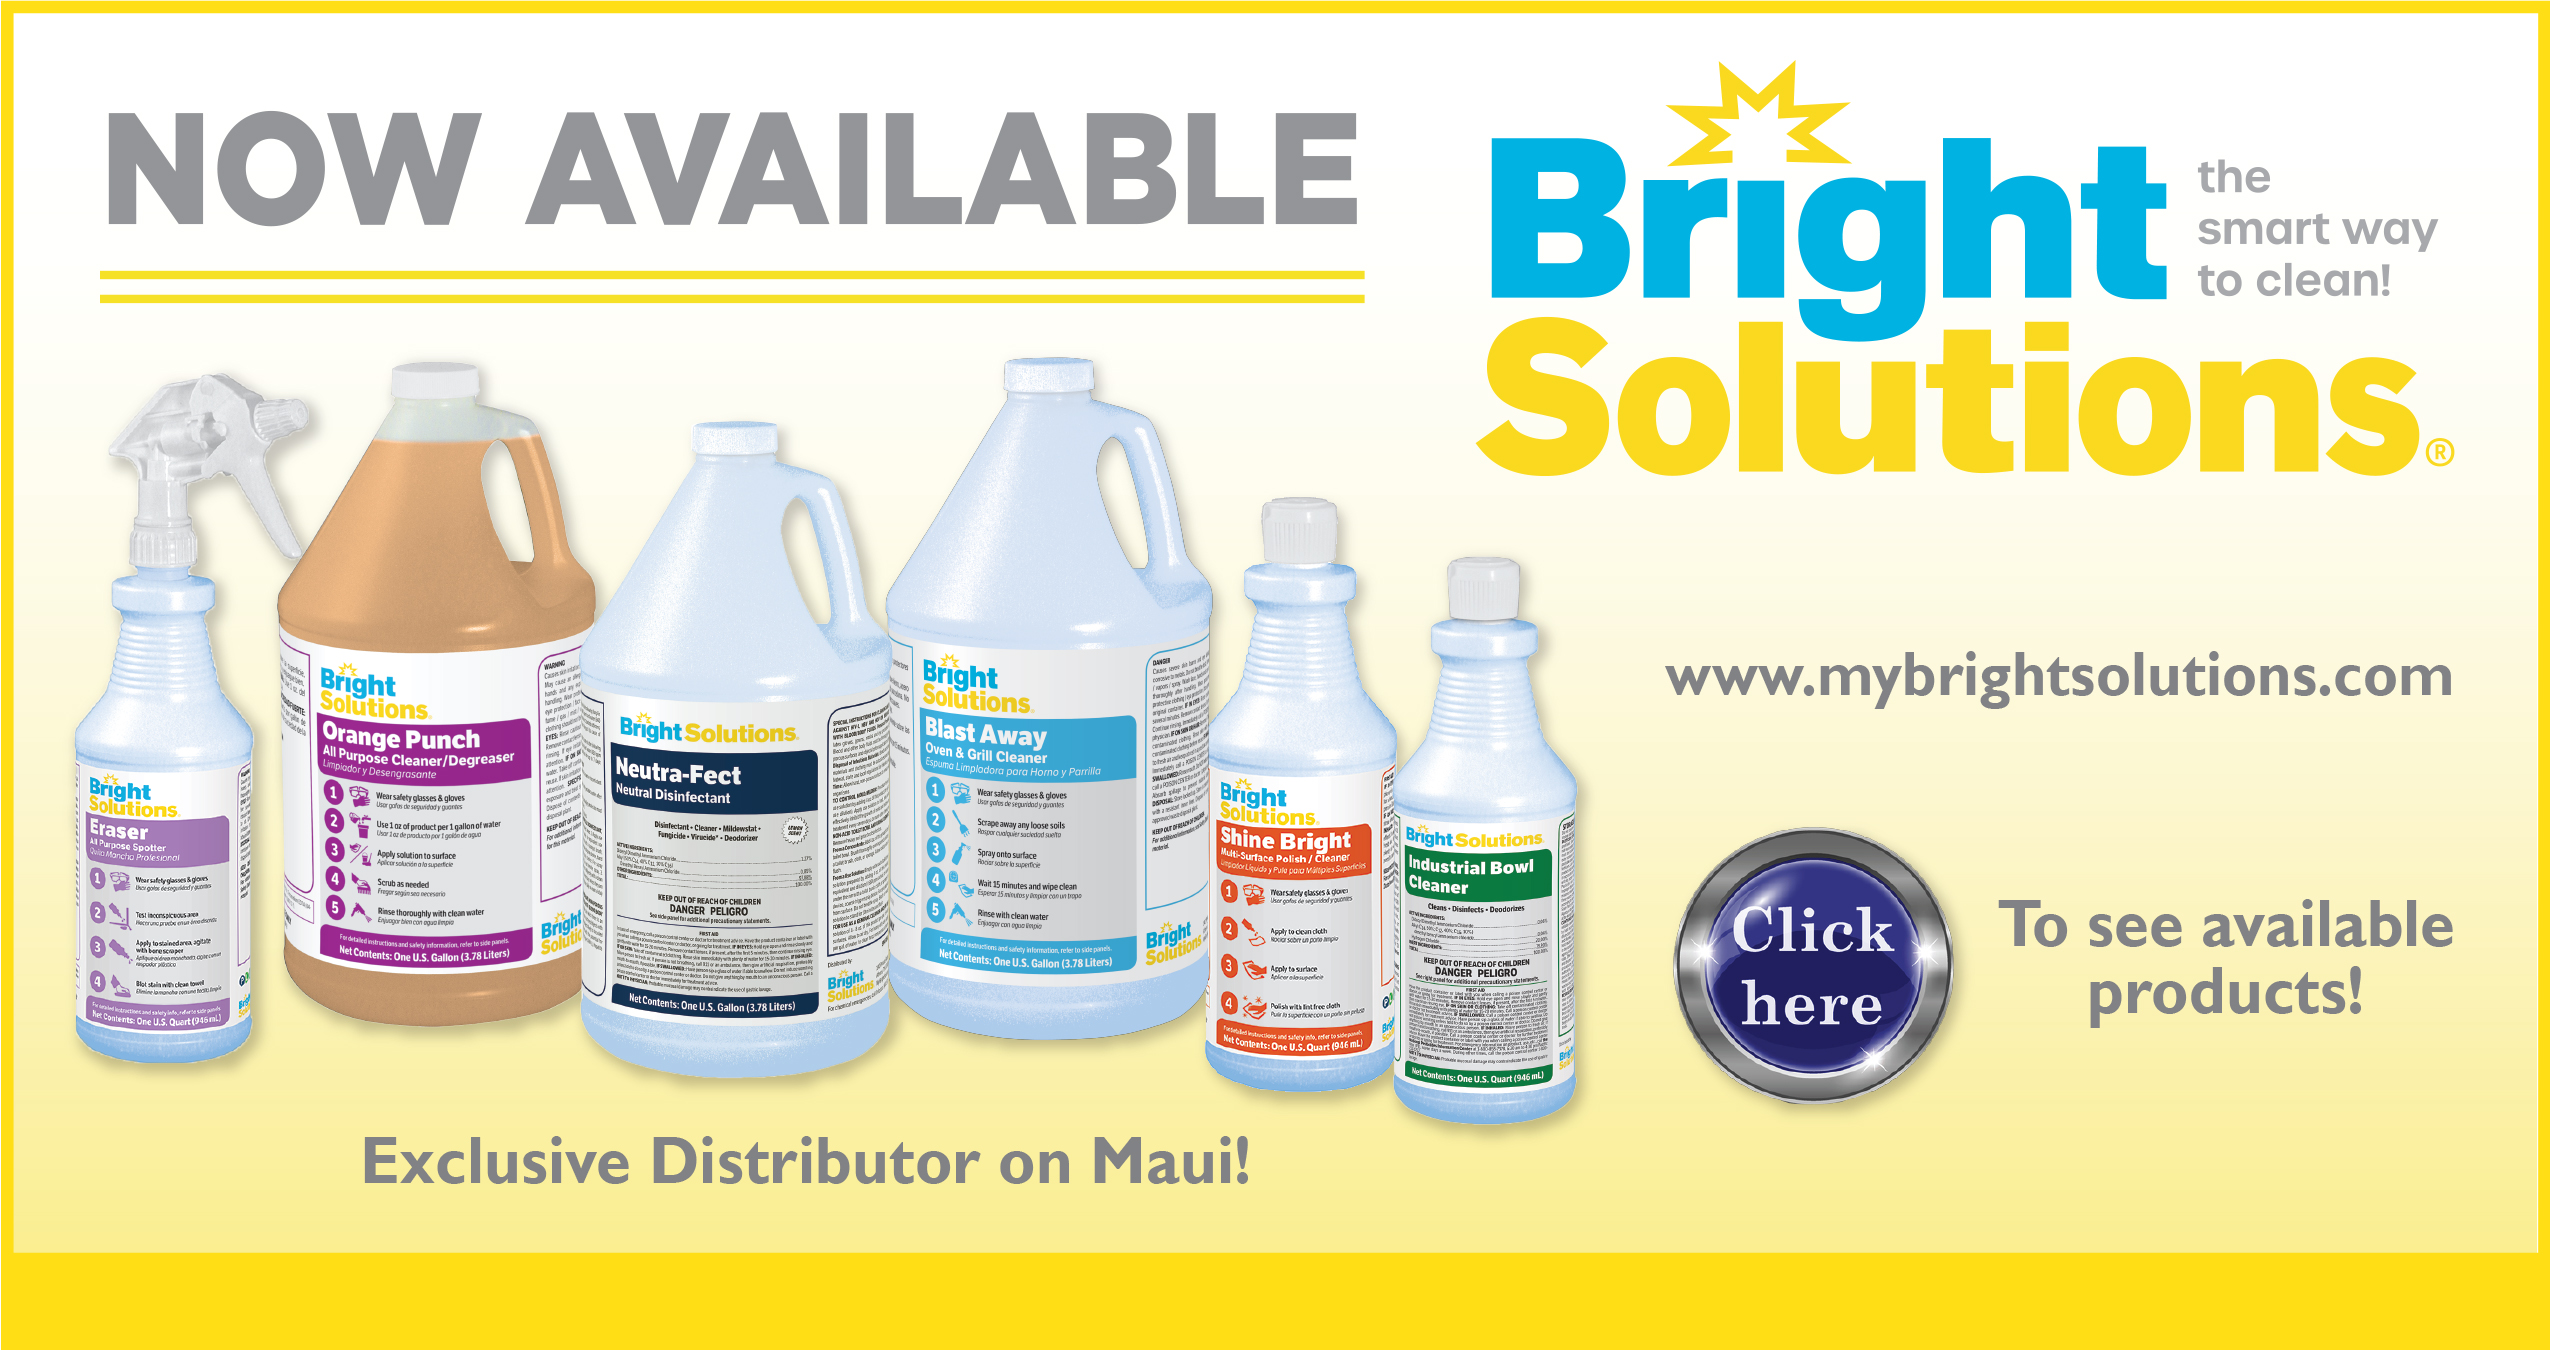 Bright Solutions Products